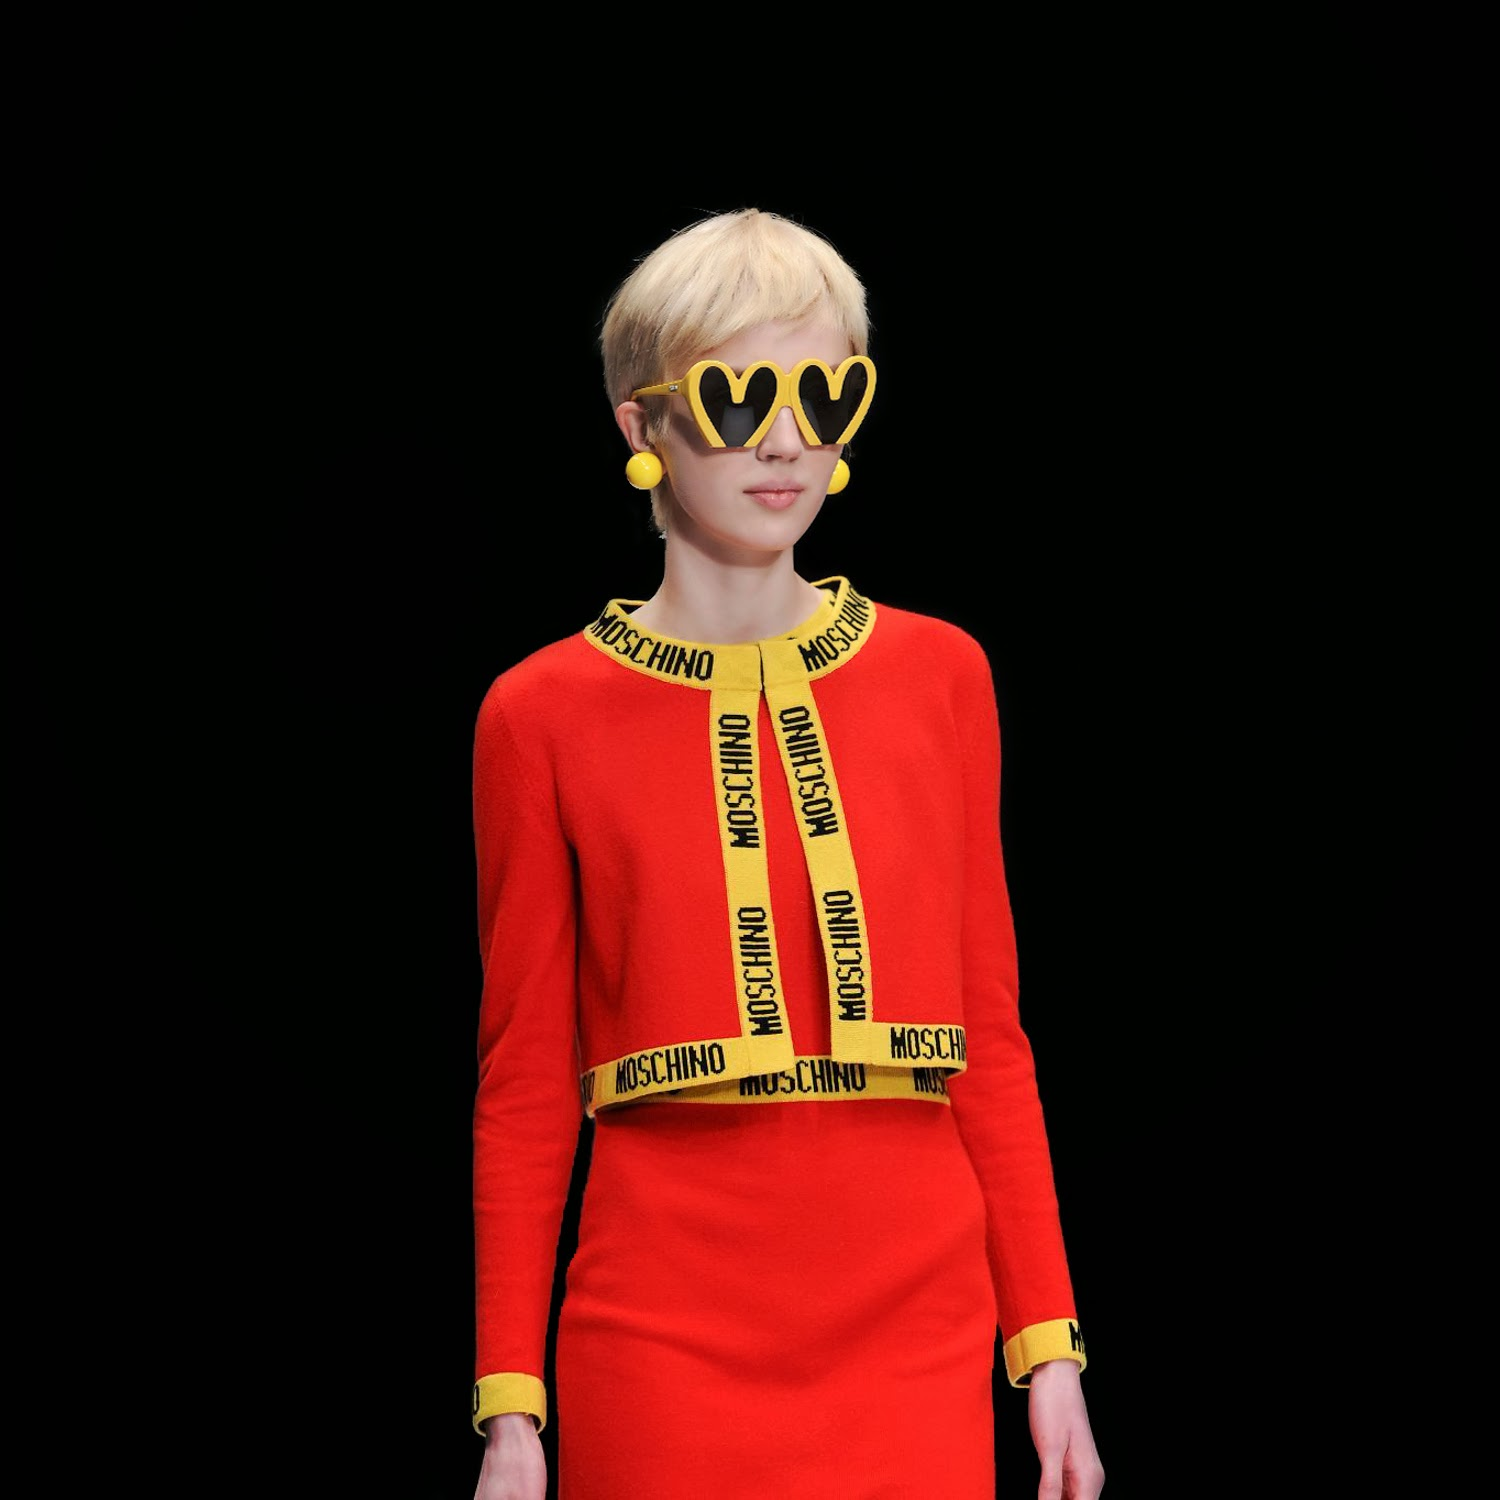 moschino-jeremy-scott-04